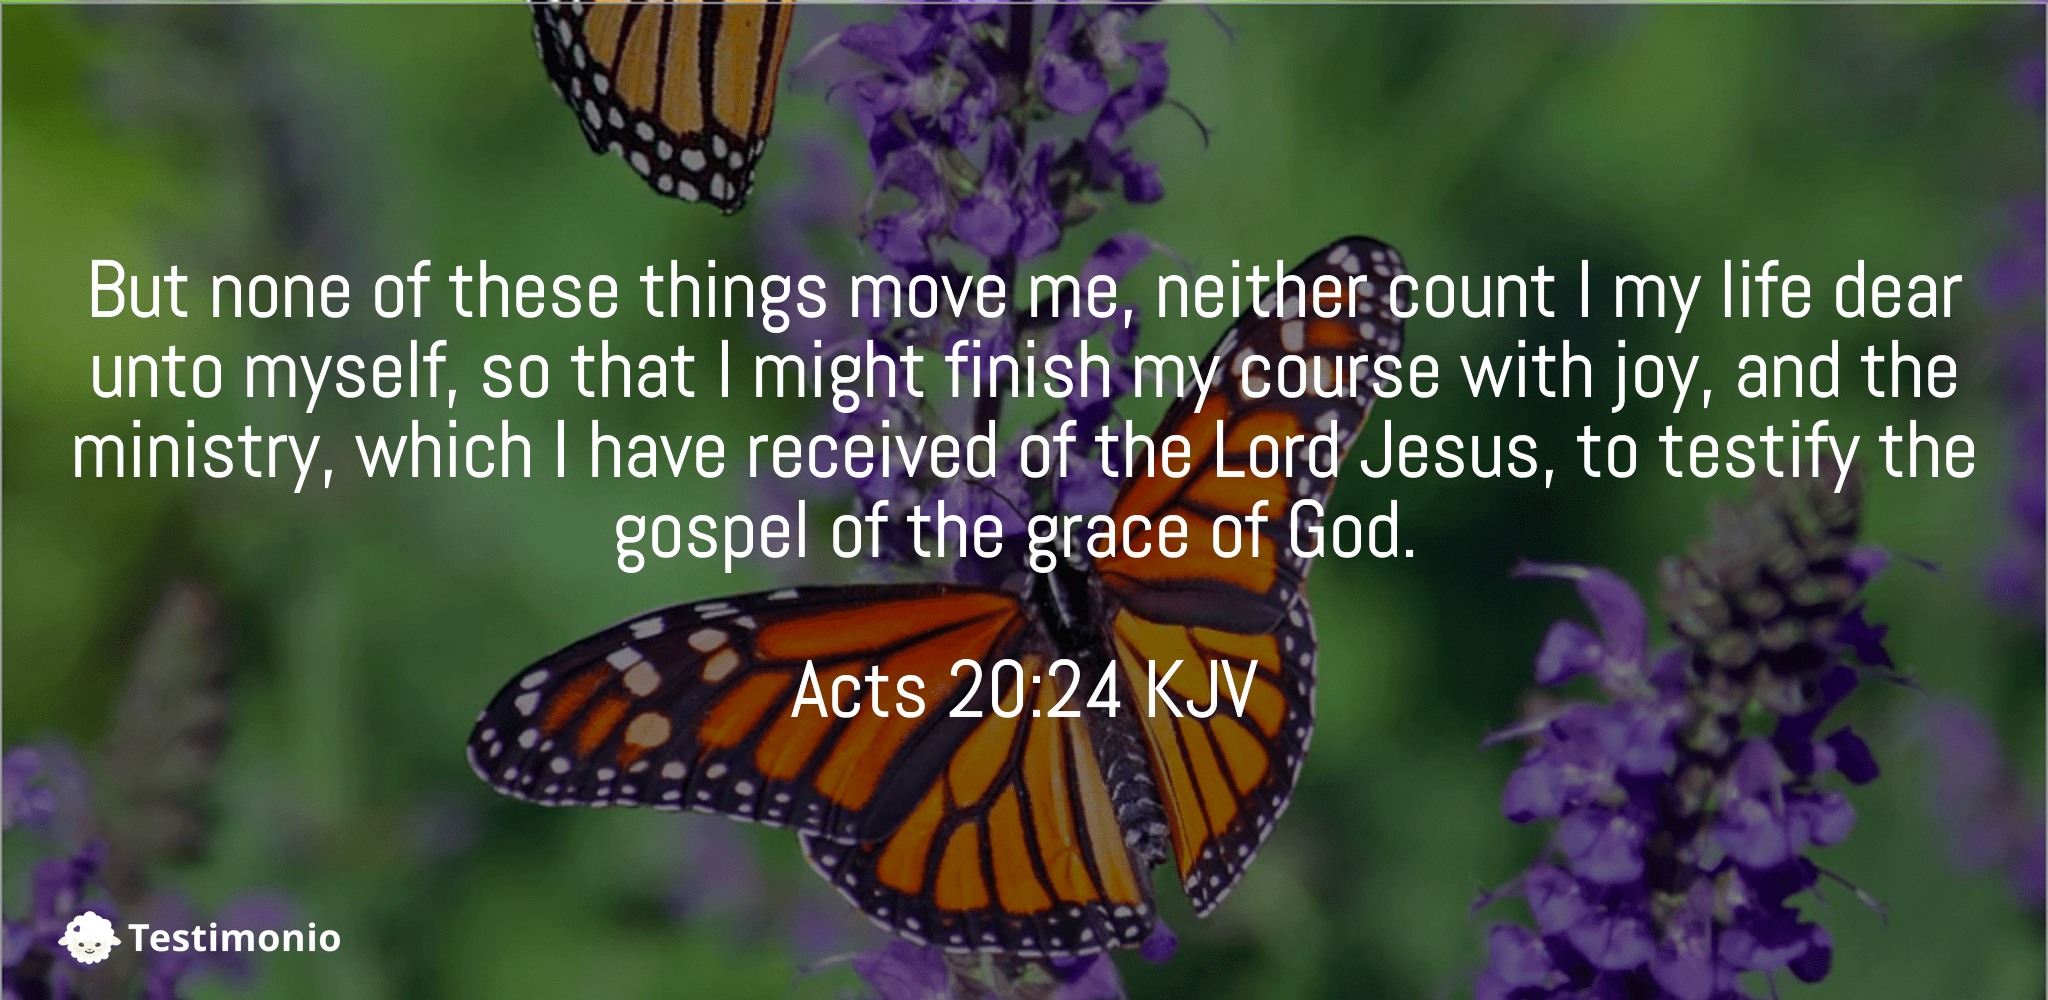 Acts 20:24